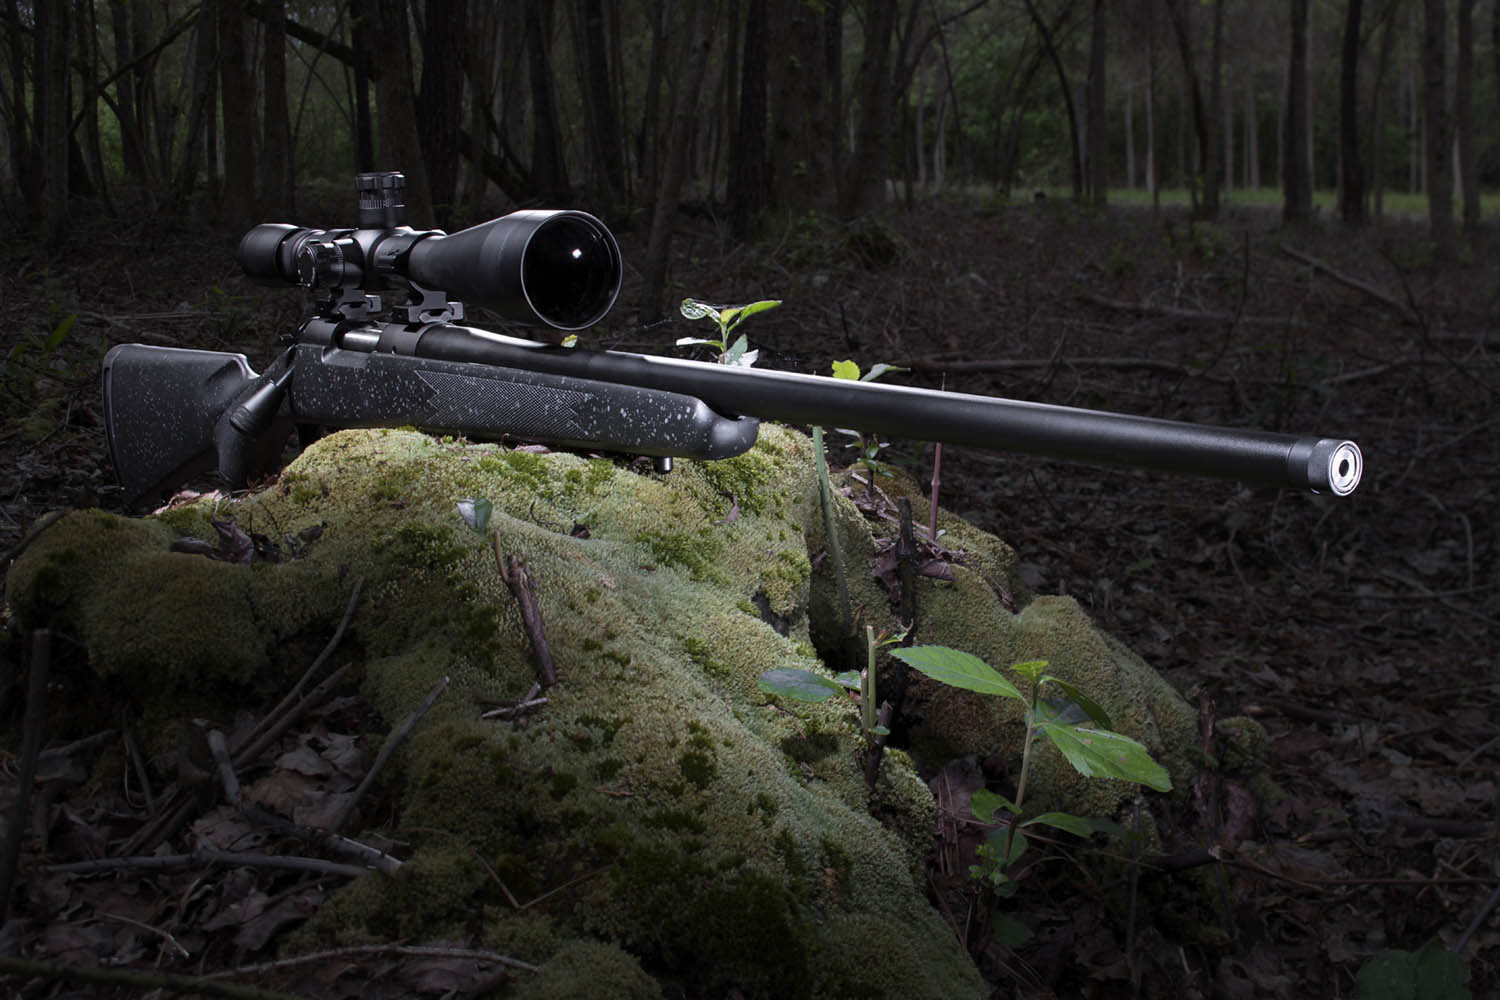 High powered rifle and riflescope ready in a forest just before dawn